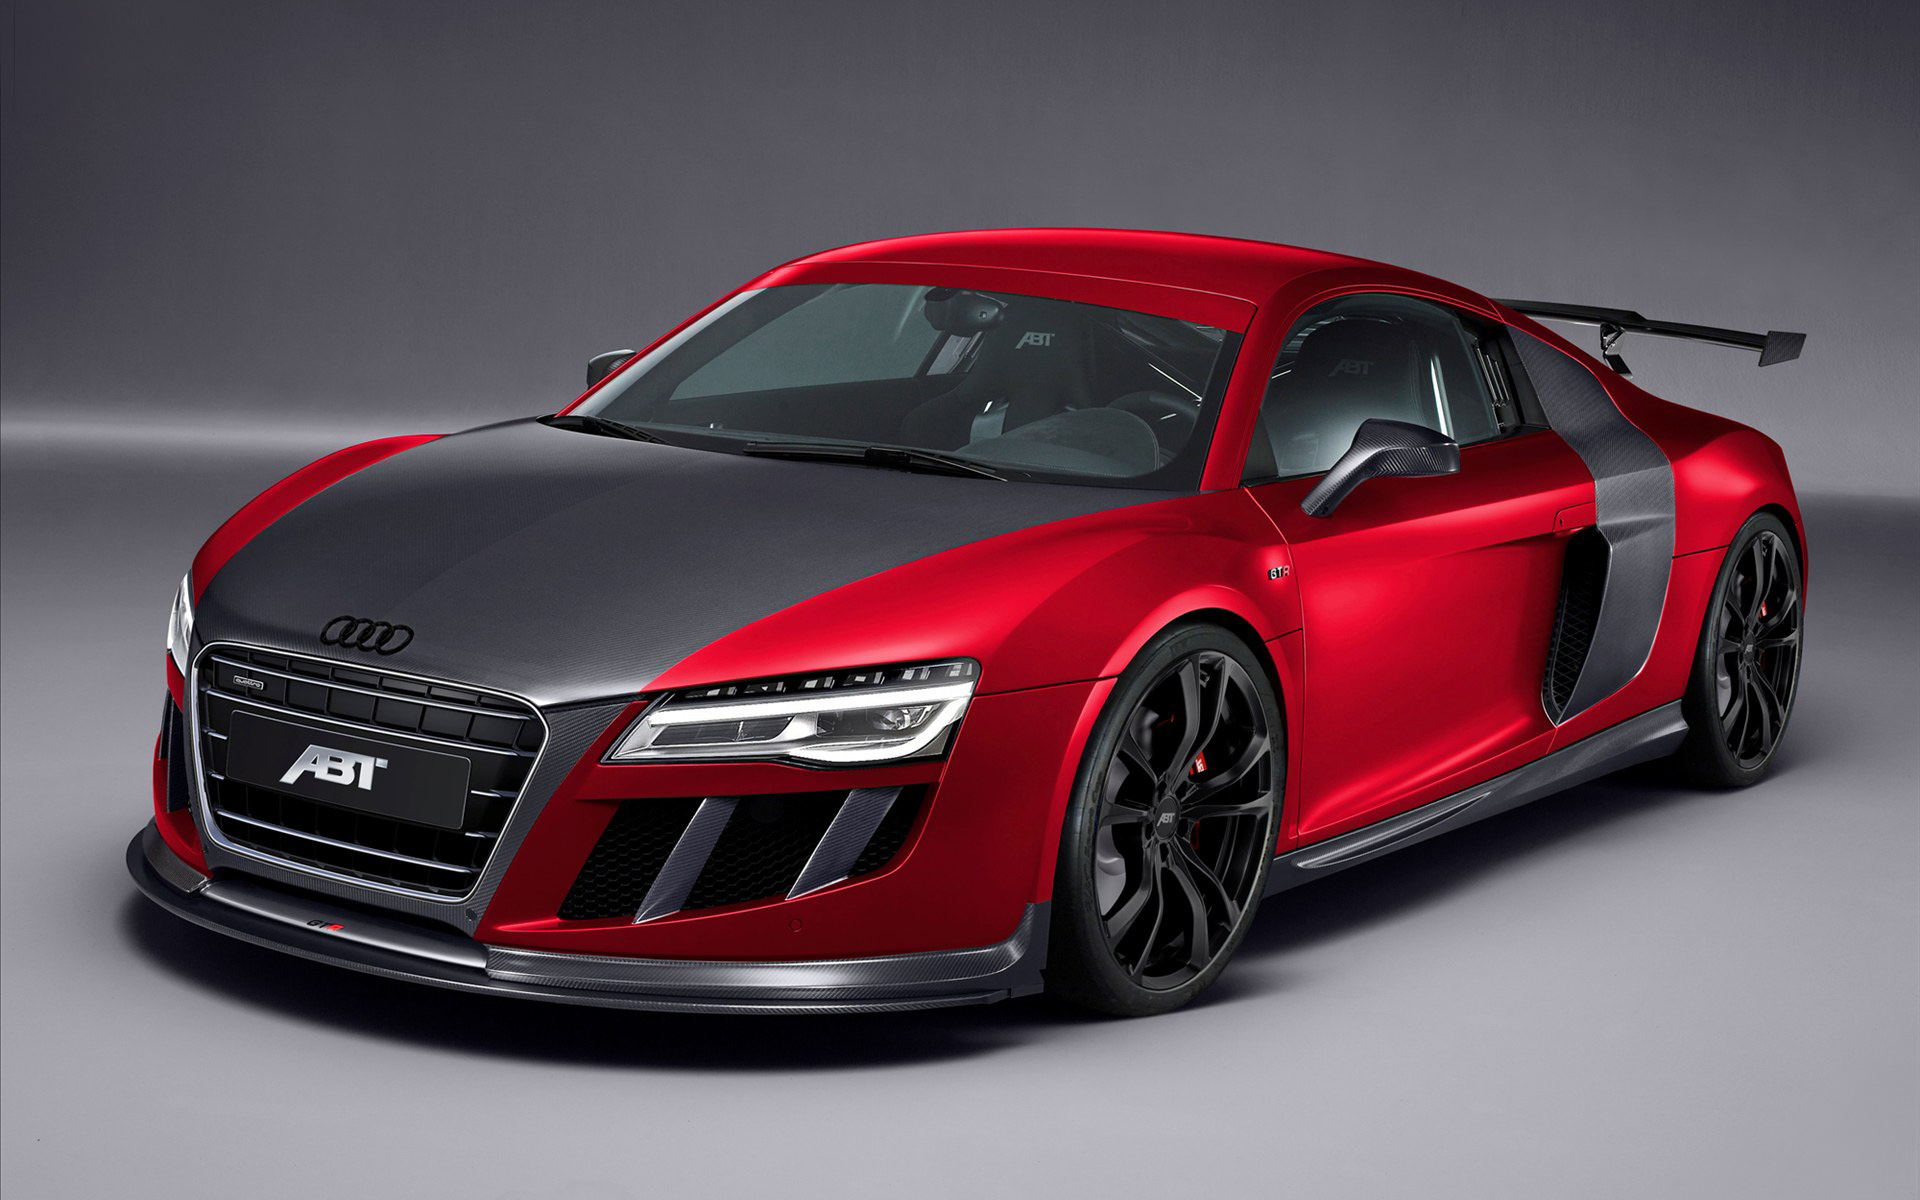 audi r8 wallpaper for desktop - wallpapersafari